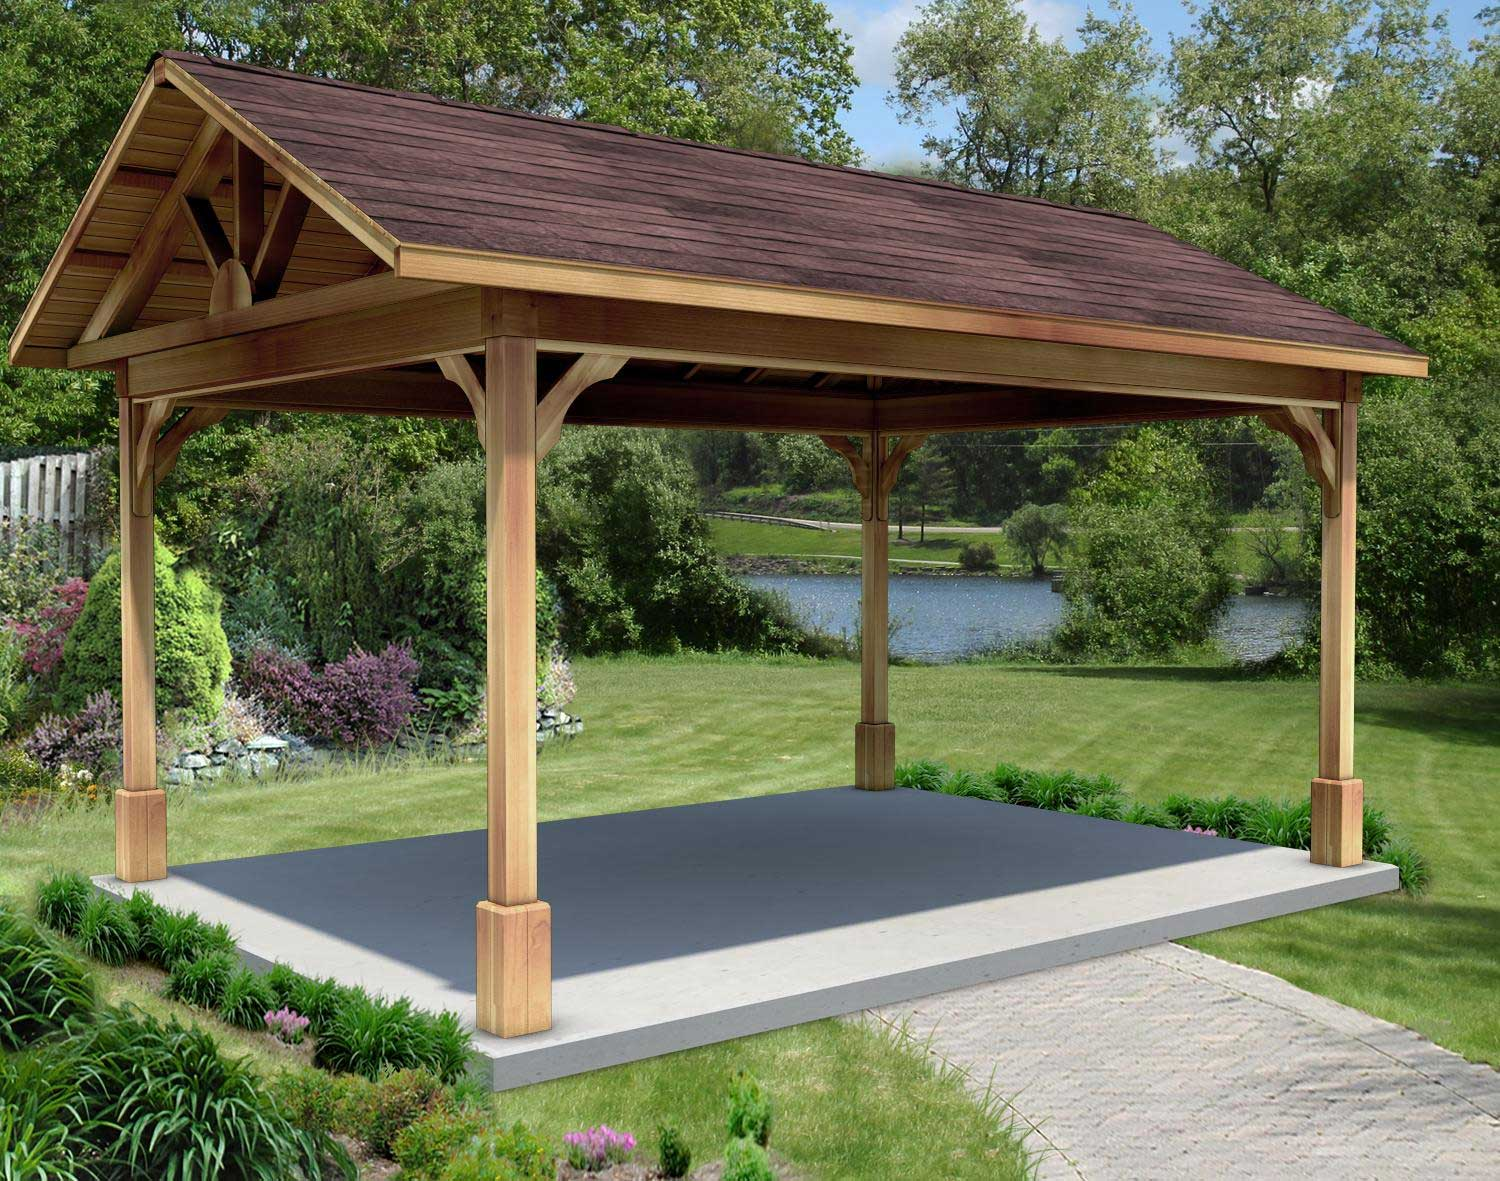 In Vogue Single Roof Rectangle Enclosed Gazebo With Wooden: Red Cedar Gable Roof Open Rectangle Gazebos With 6/12 Roof